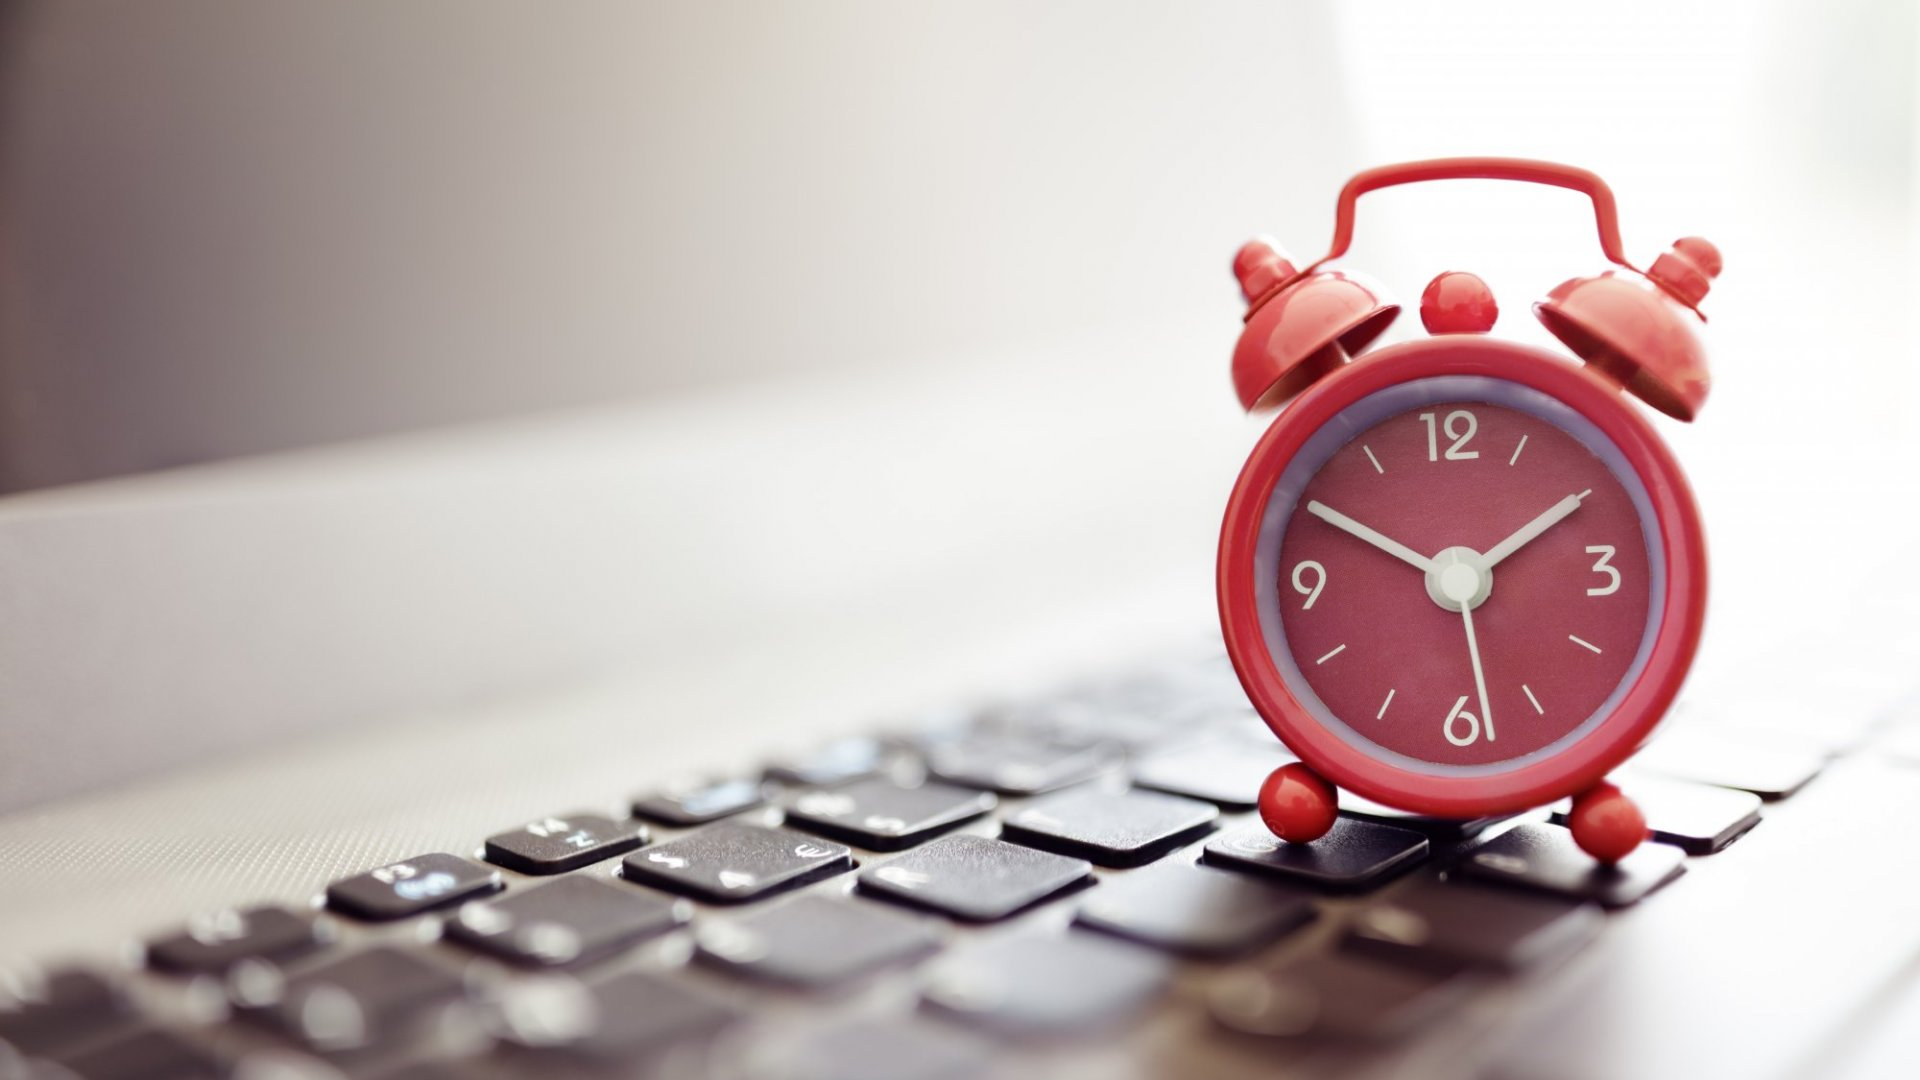 2 Tools That Can Help Small-Business Owners With Reminders, Invoicing, and Time Management